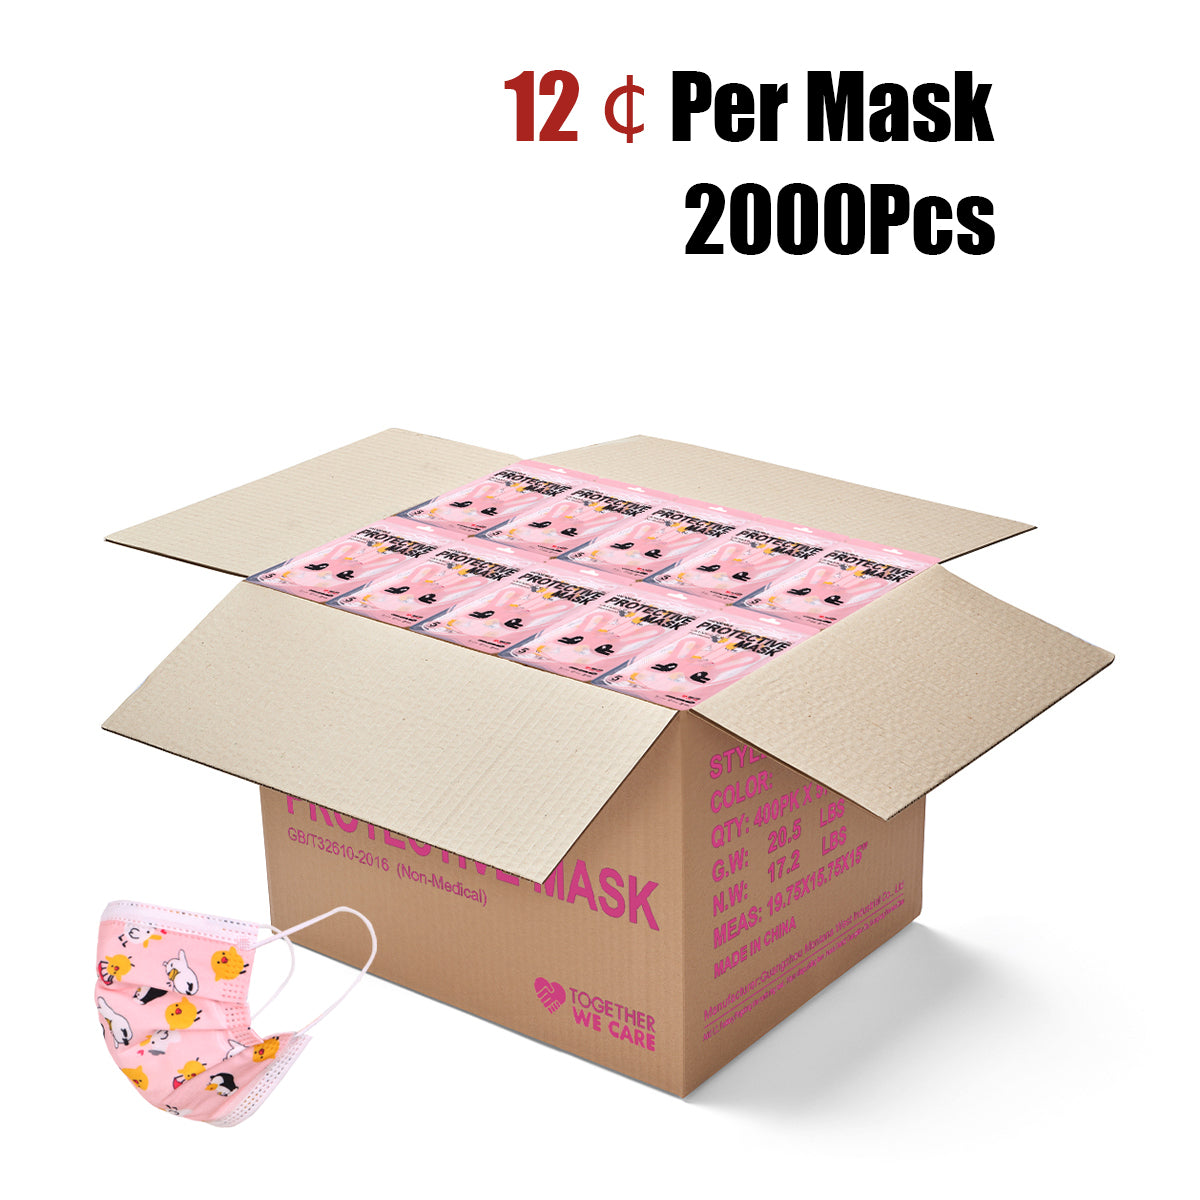 2000Pcs American Bling Kids 3 Ply Disposable Pink Baby Chicks Face Mask (5pcs/Pack)